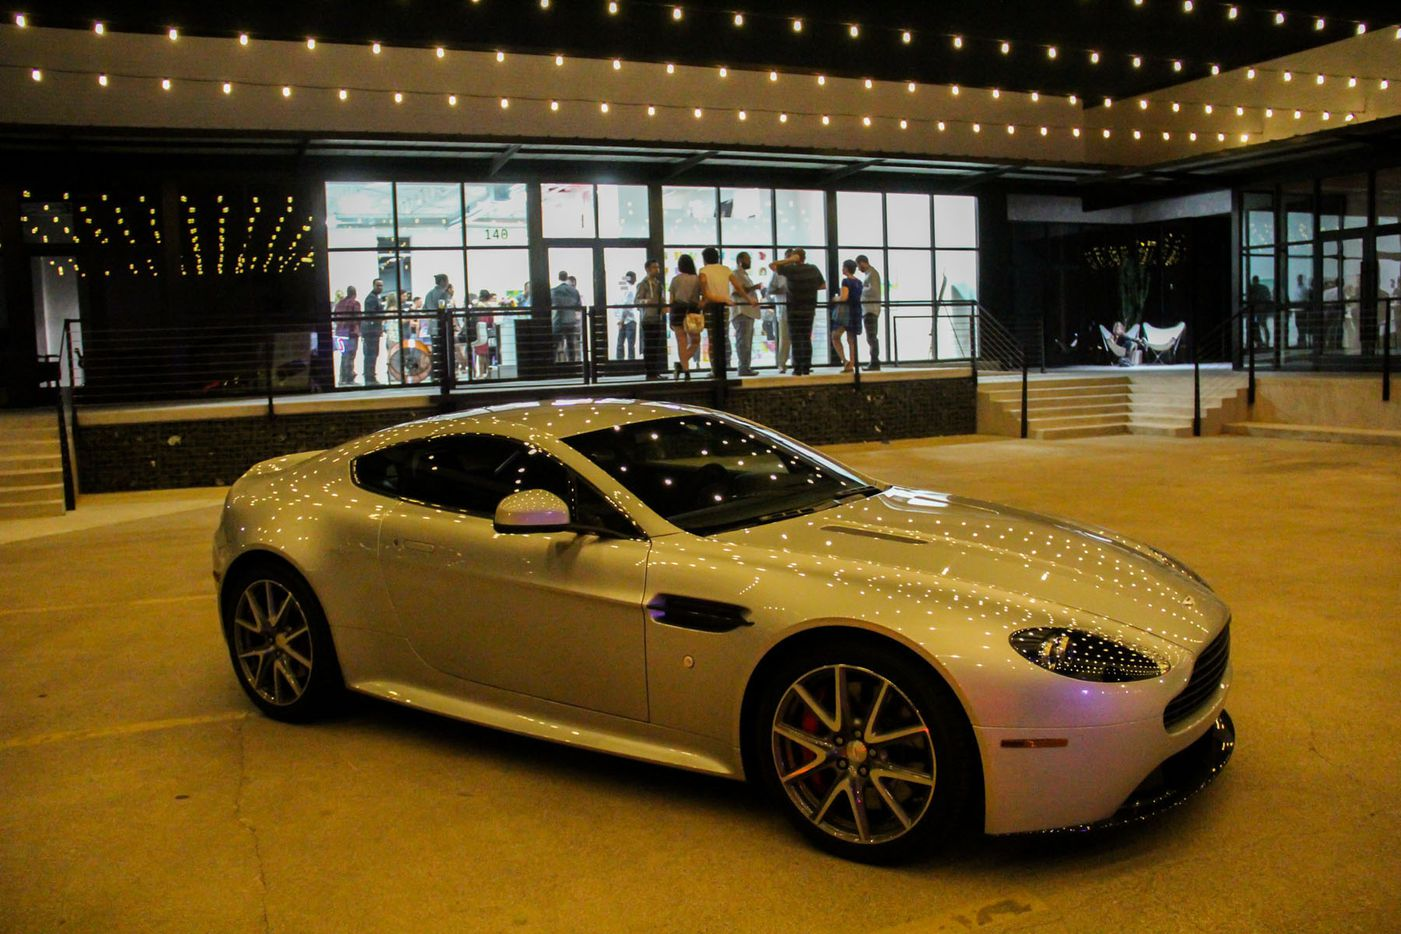 Aston Martin displayed their latest cars at the Random Art Gallery  opening reception of visual artist Tori Martin's Euphoria.